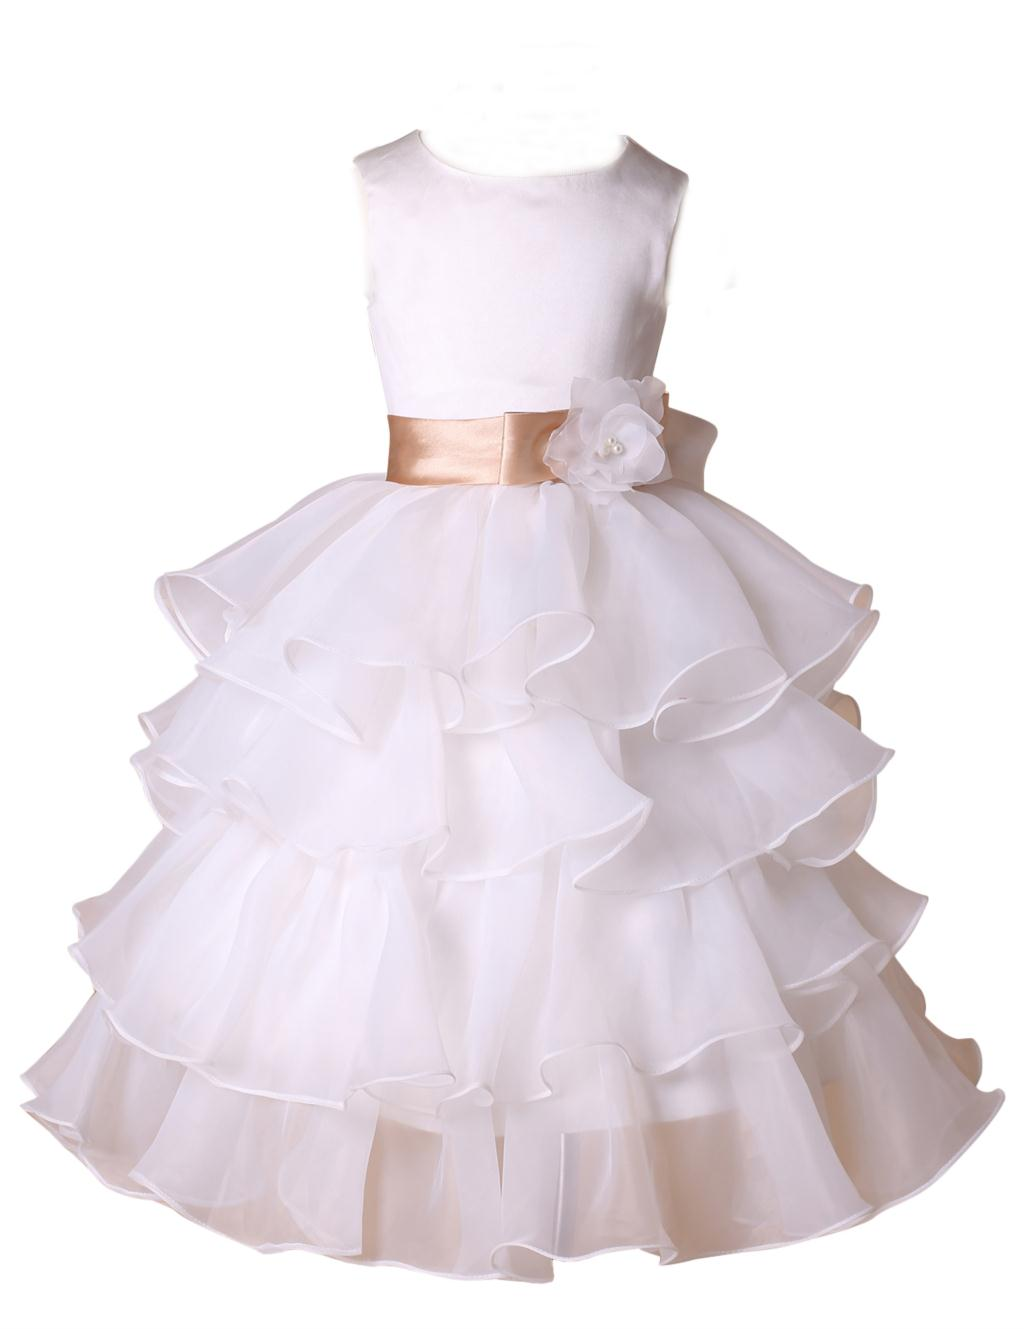 2016 New Arrival Organza Flower Girl Dresses For Weddings Girls White Pageant